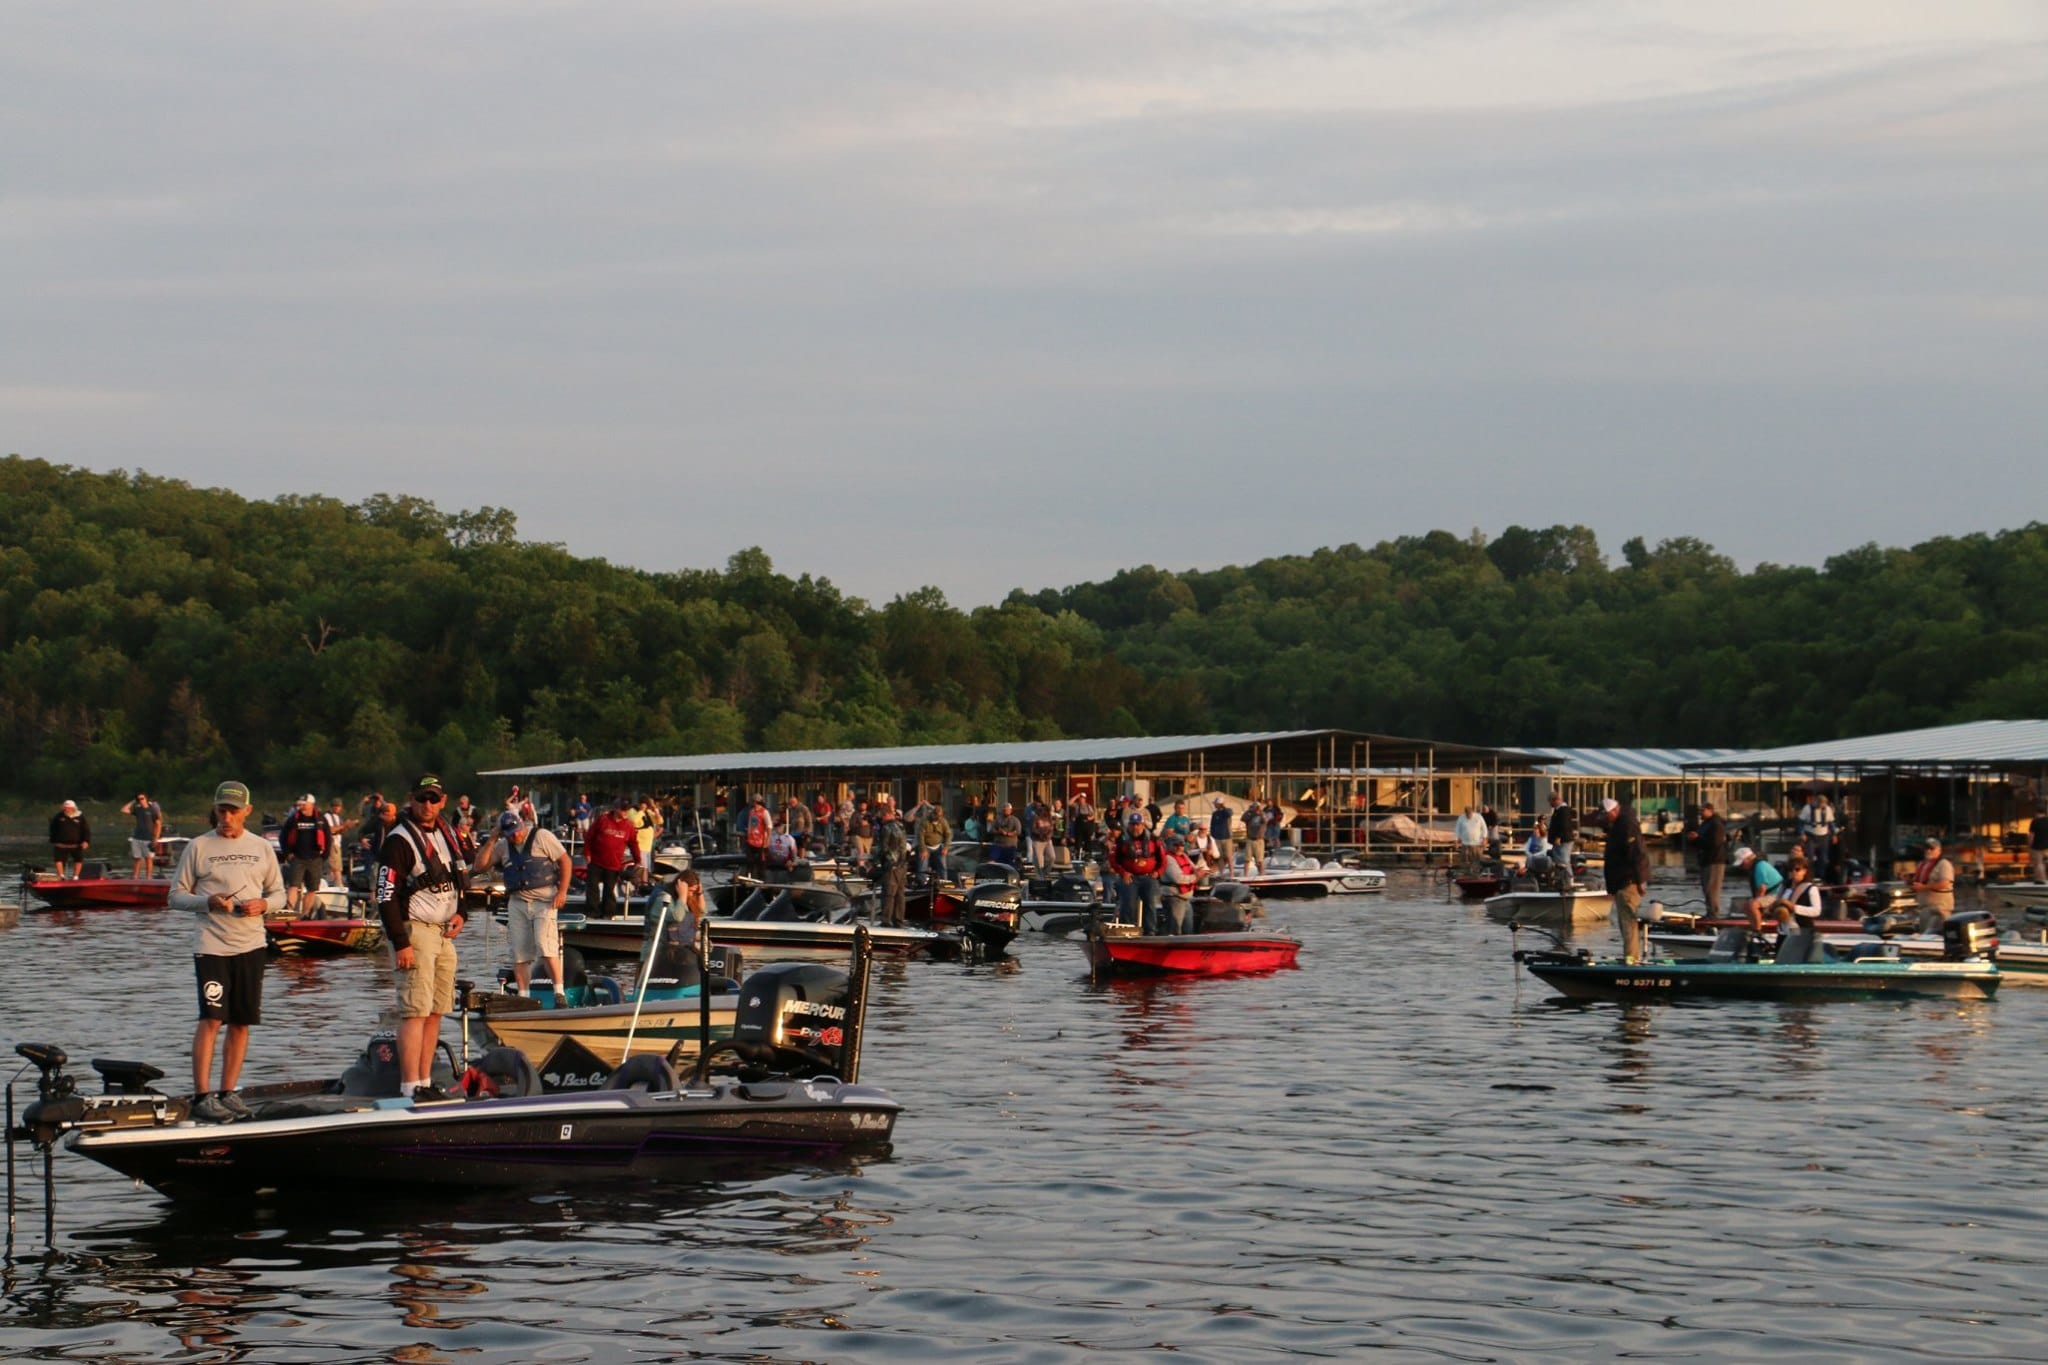 People stand on a large group of boats while fishing on the water